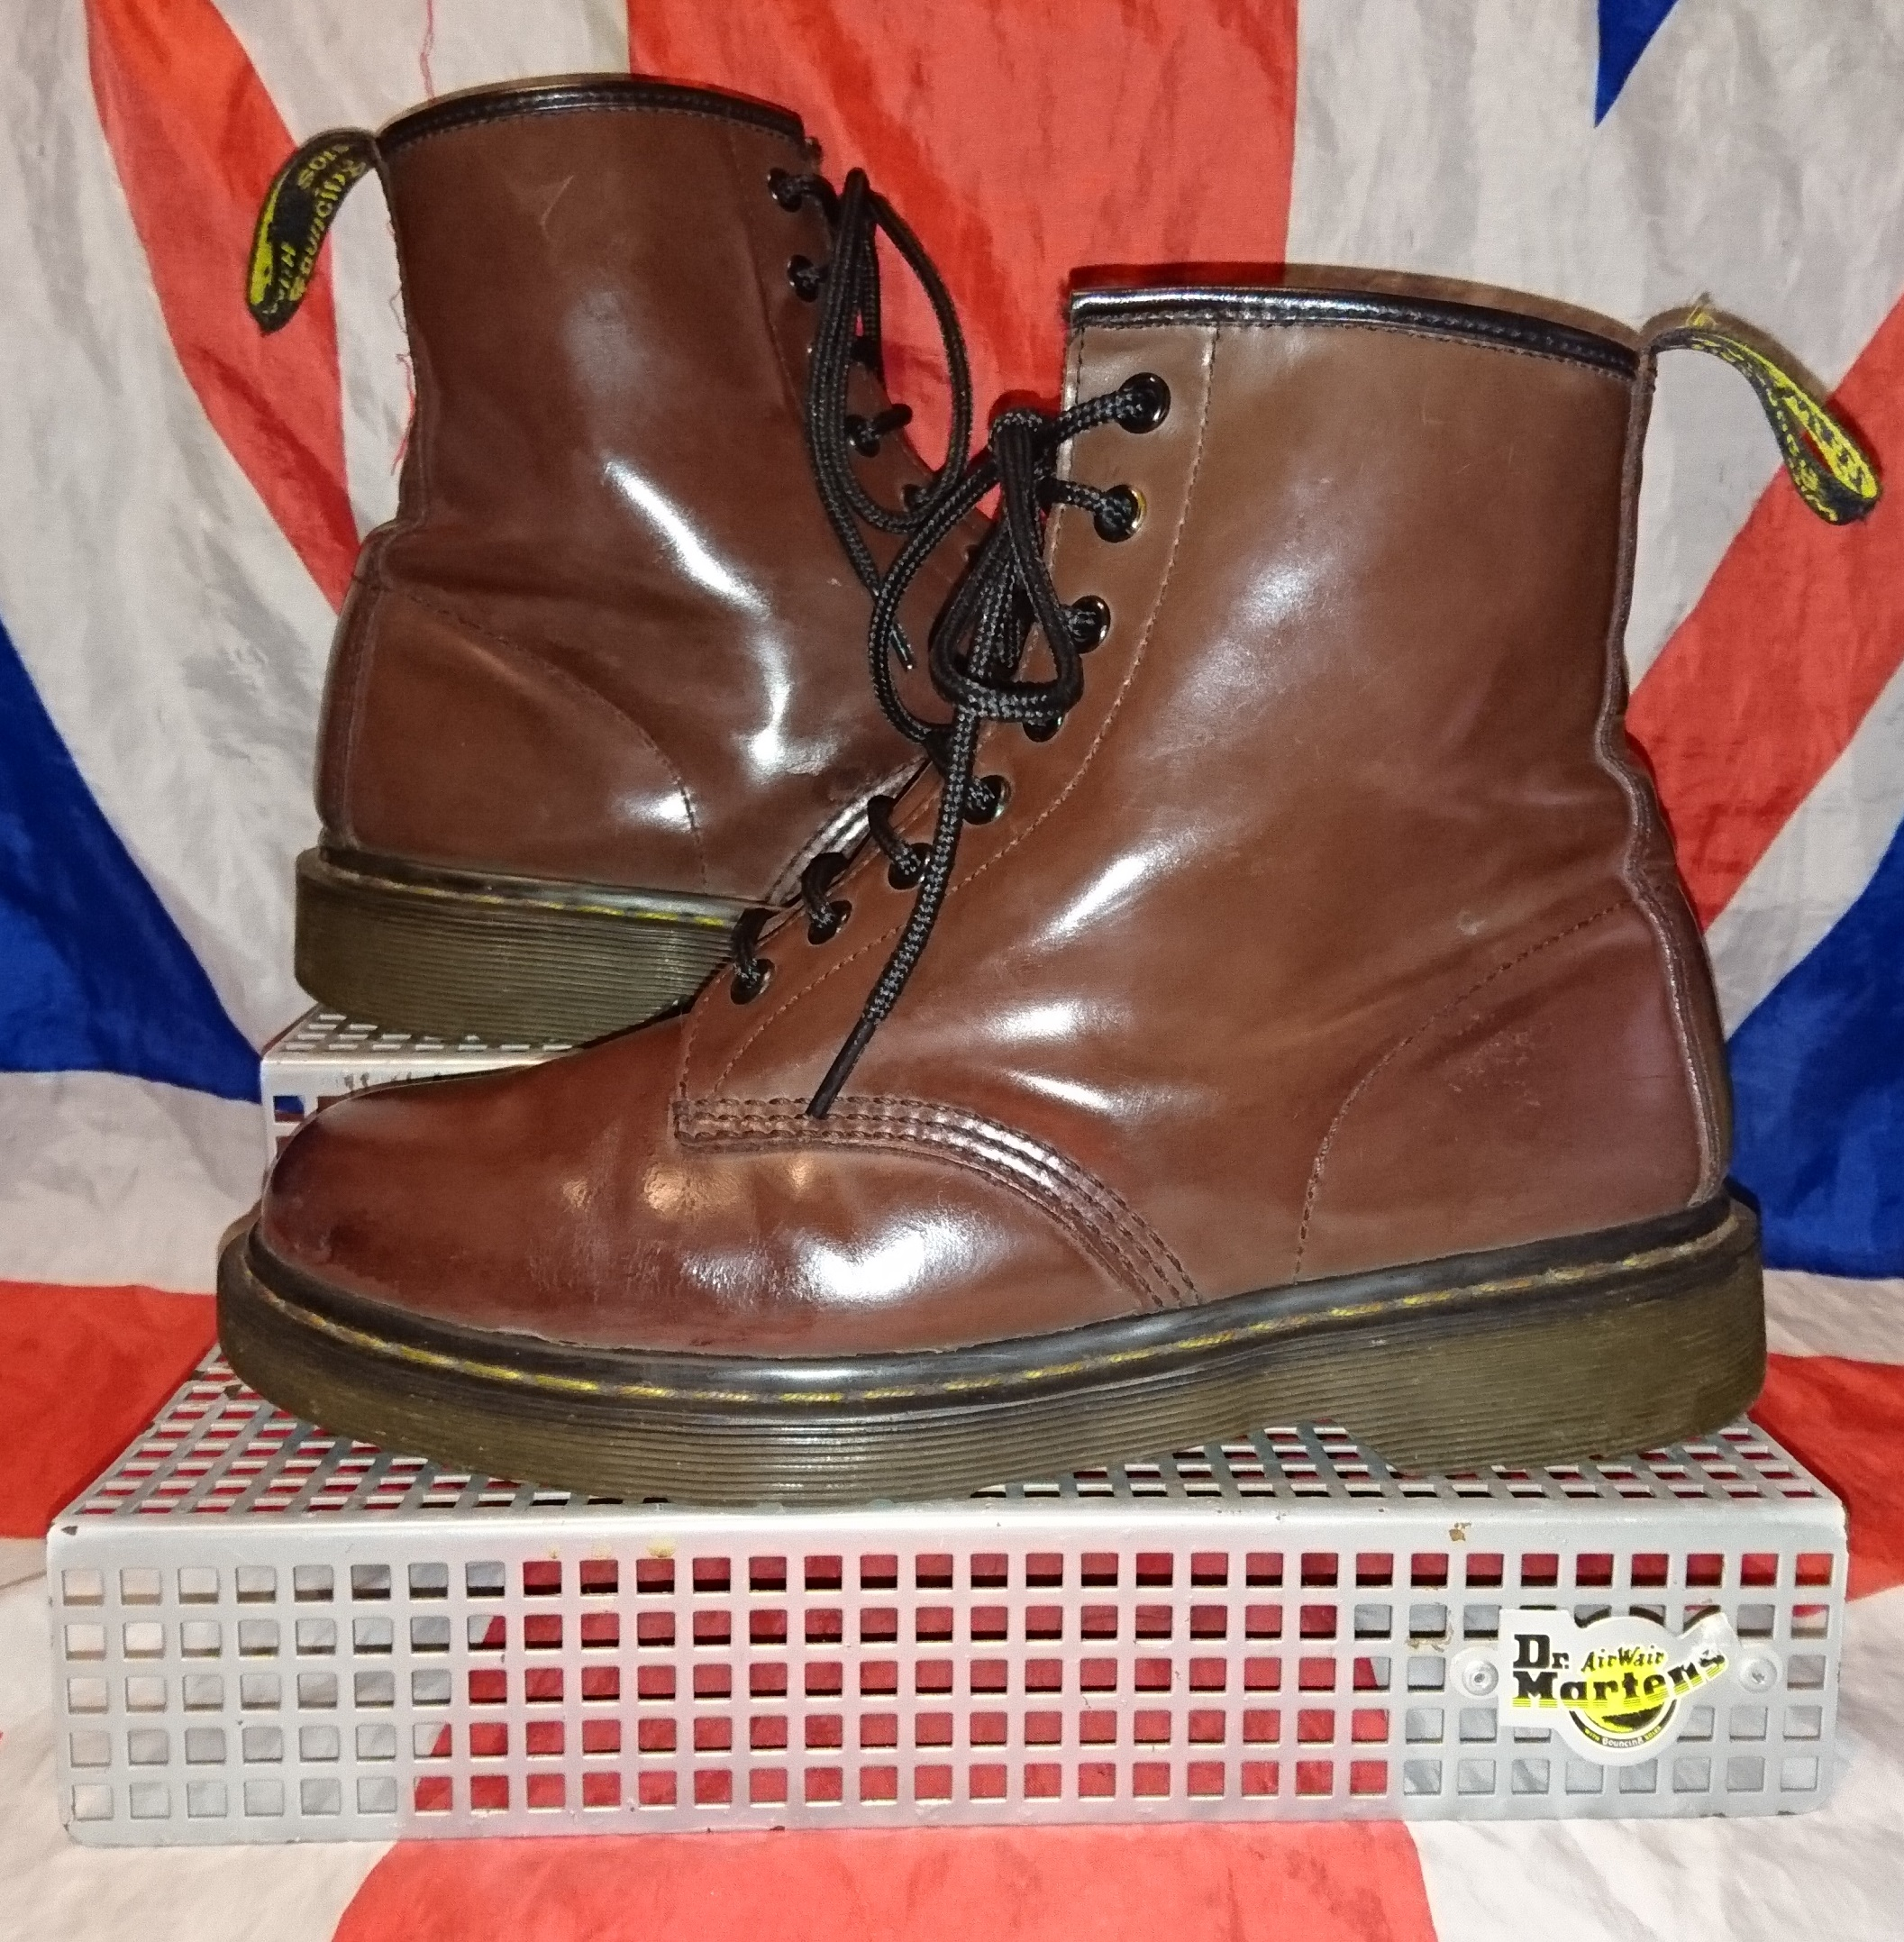 c2d02efaa1704 RARE 1460 Milled Chocolate Brown Leather Dr Doc Martens - UK 7 EU 41 ...